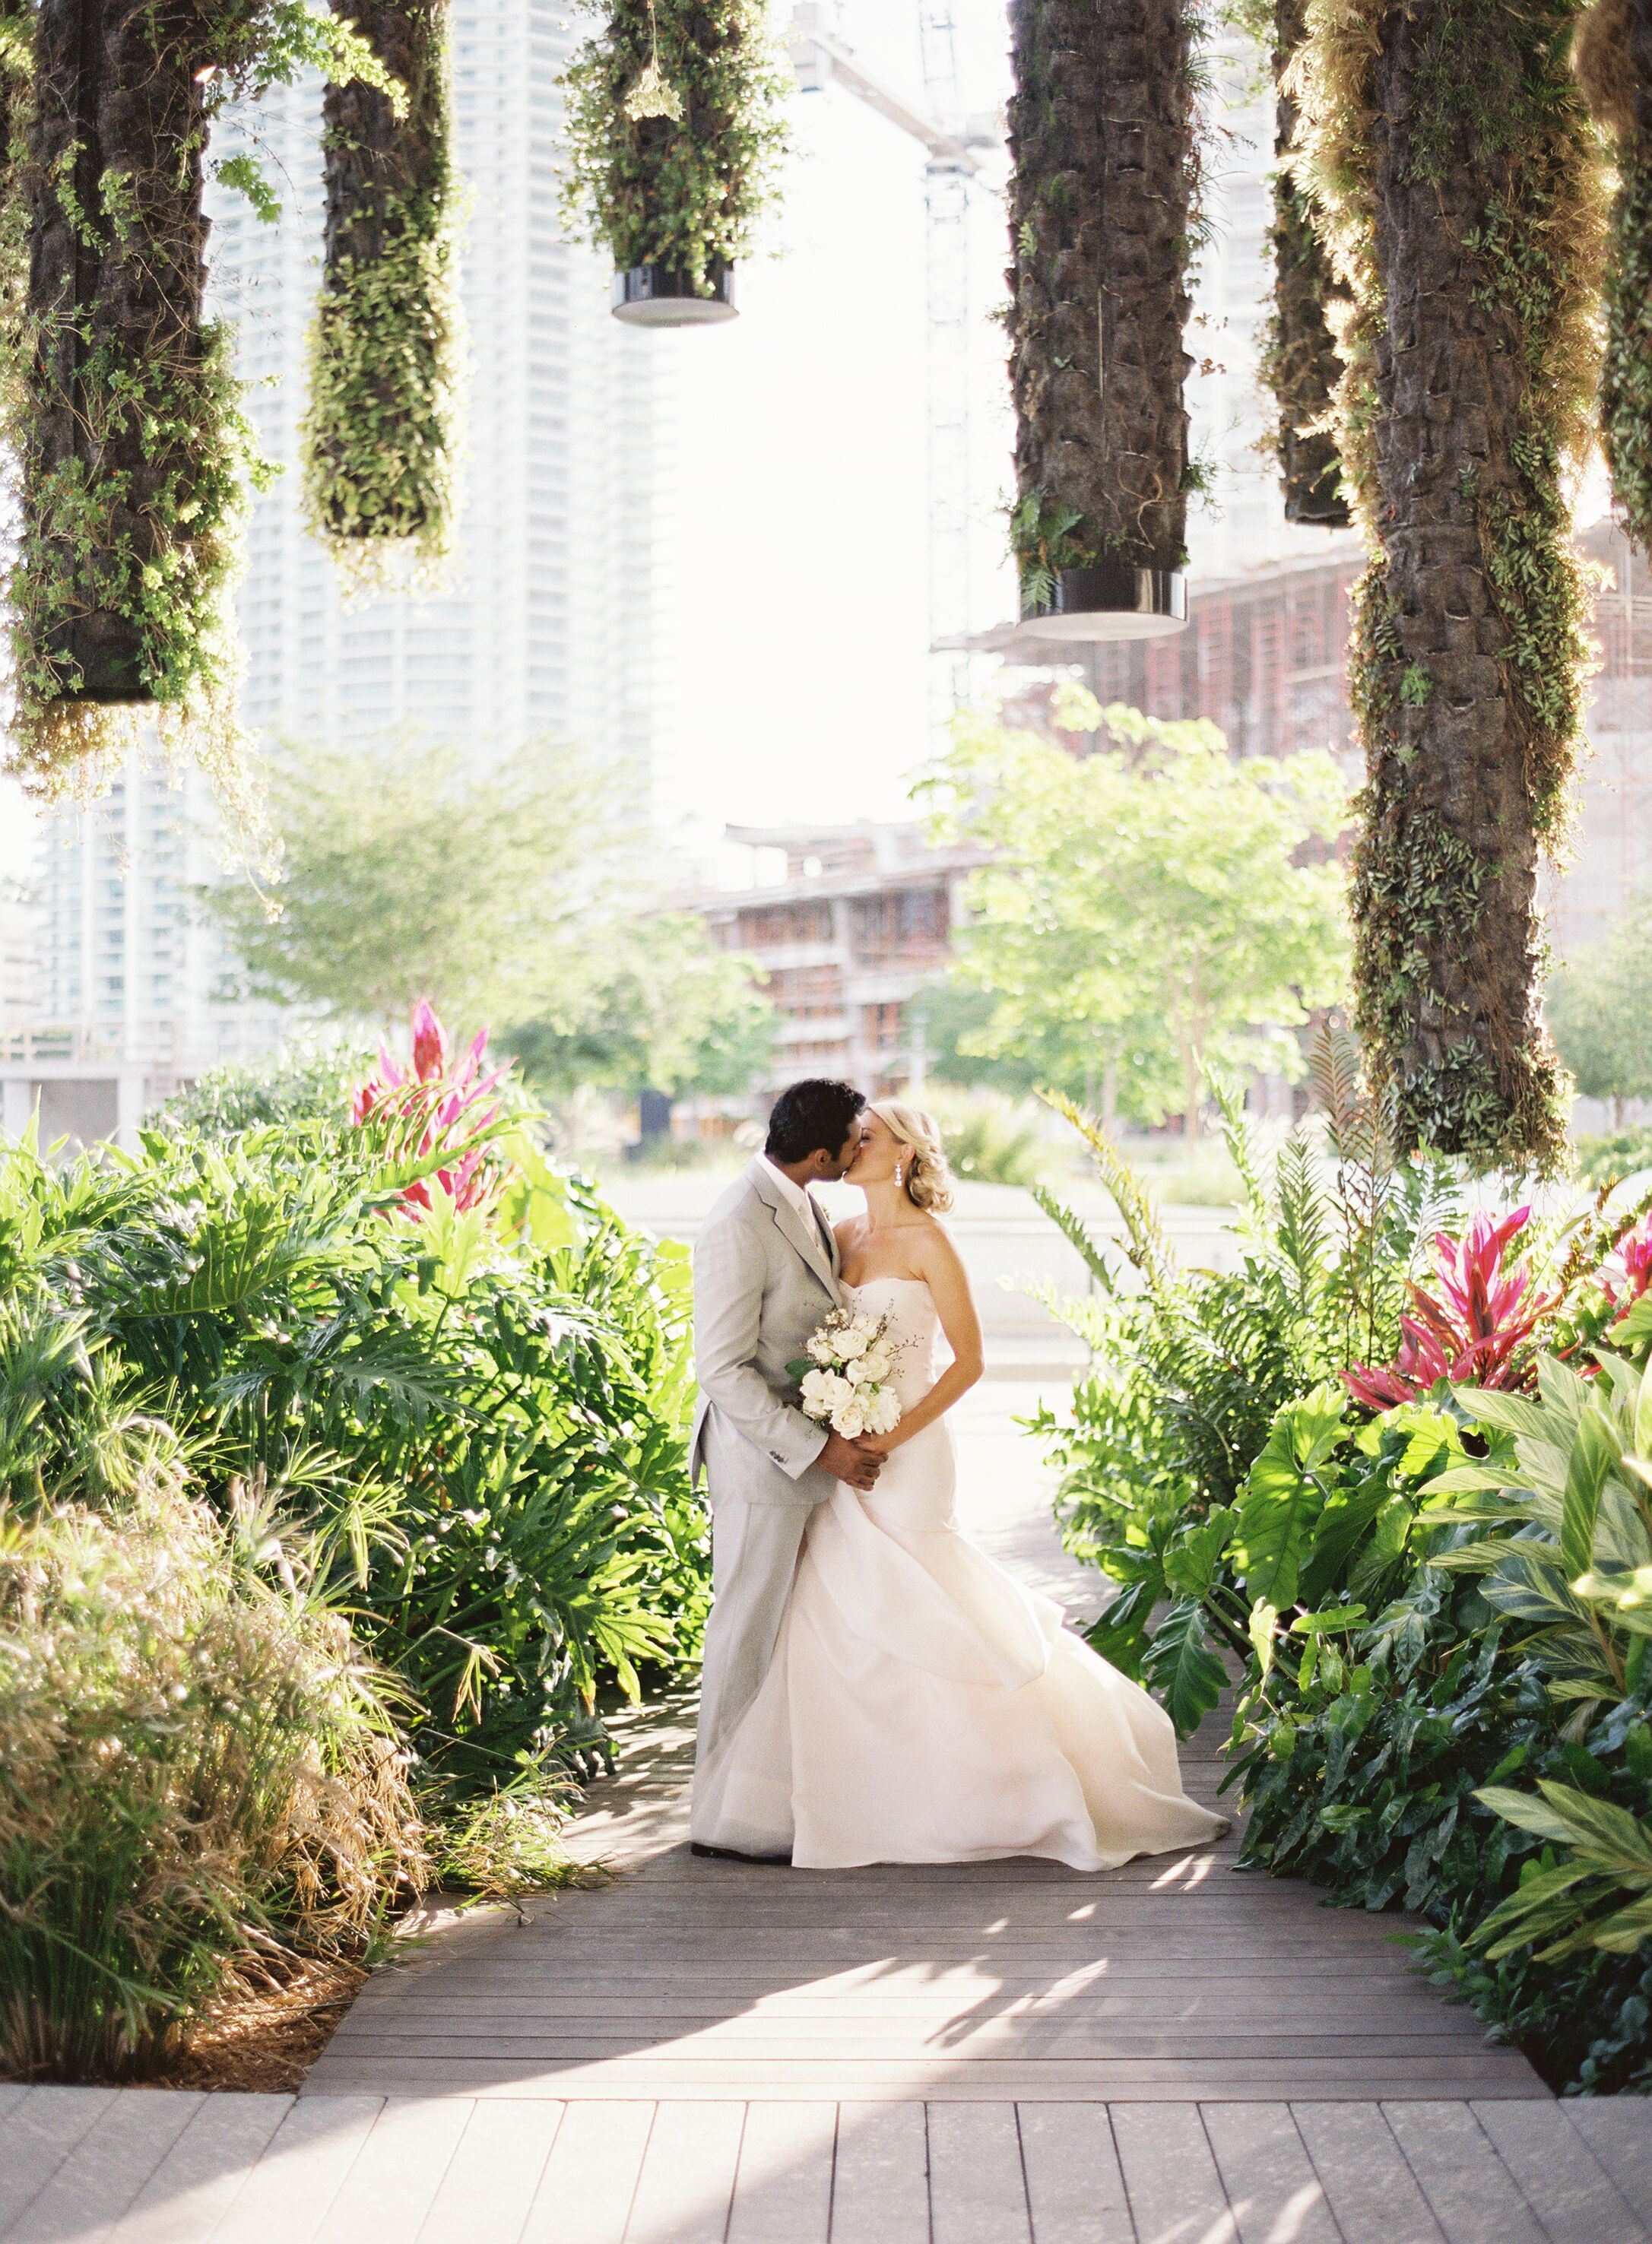 An Elegant Modern Garden Wedding At Perez Art Museum